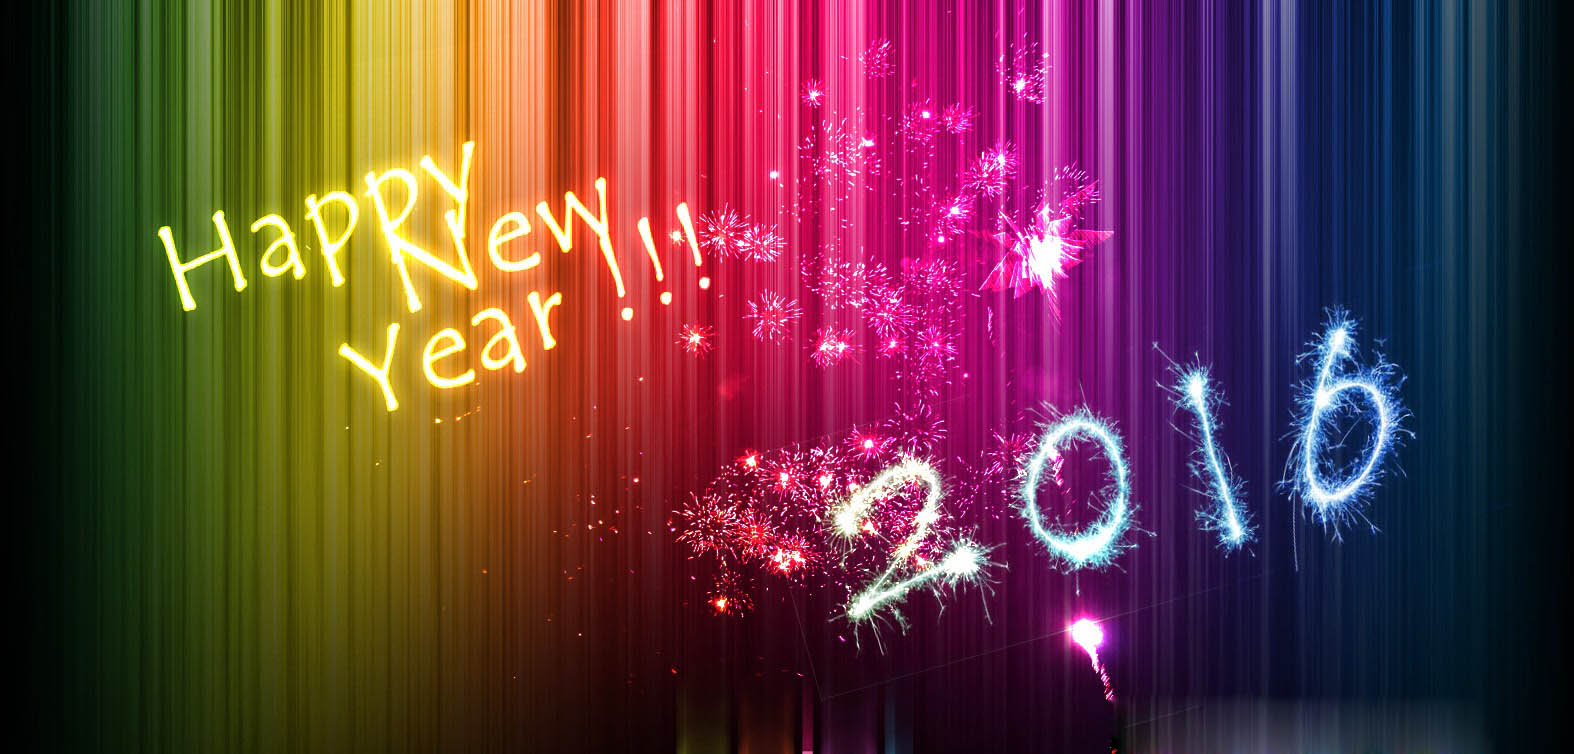 New year 2016 -hd